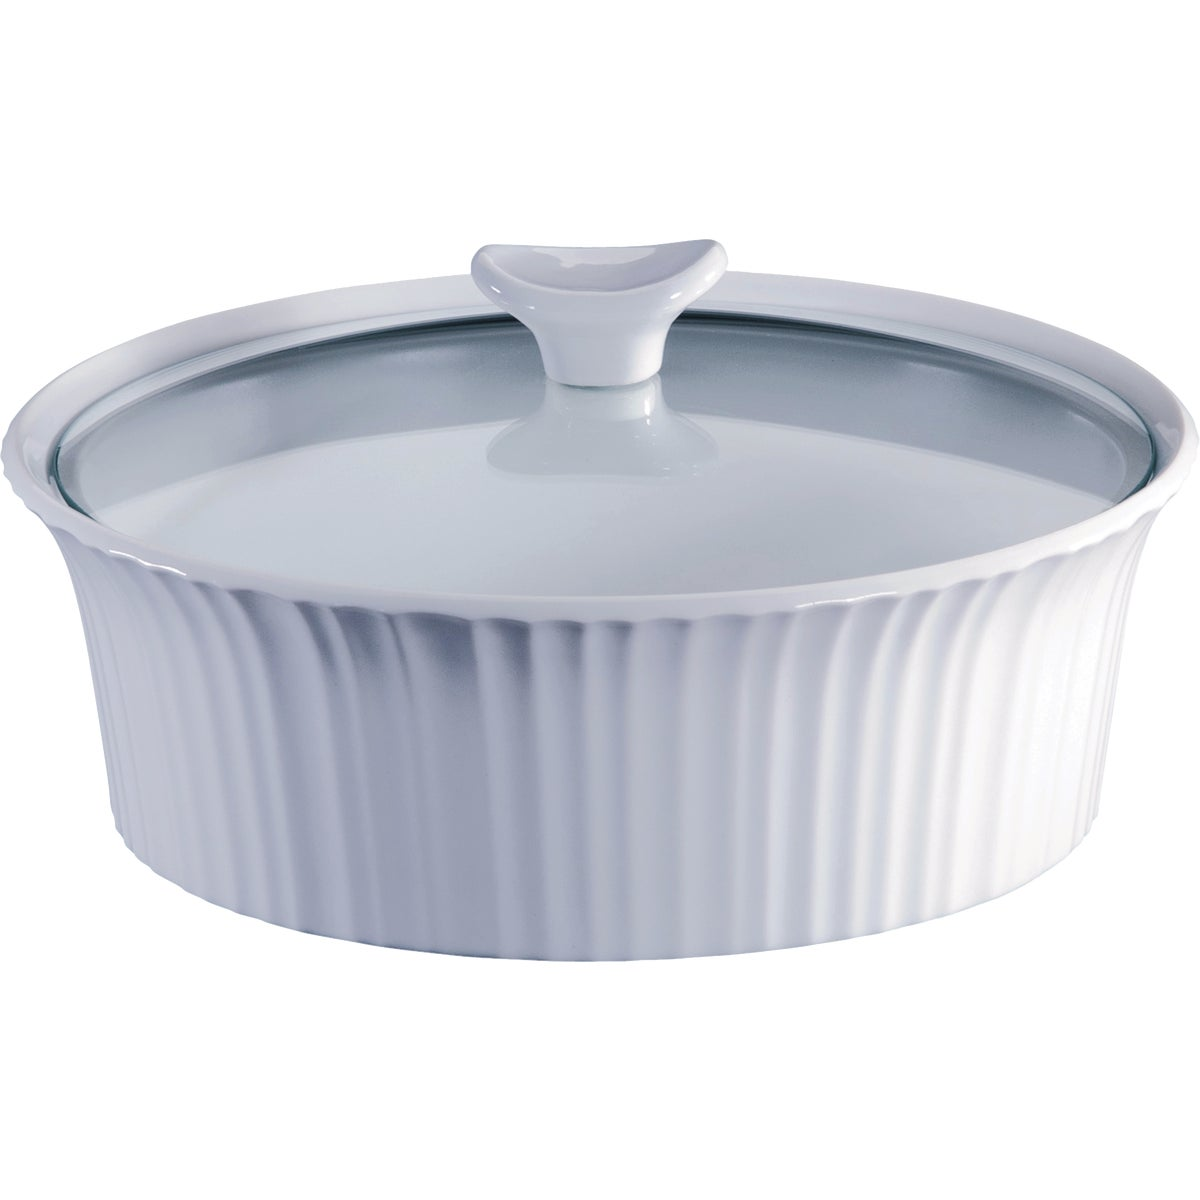 ROUND COVERED CASSEROLE - 1105930 by World Kitchen  Ekco